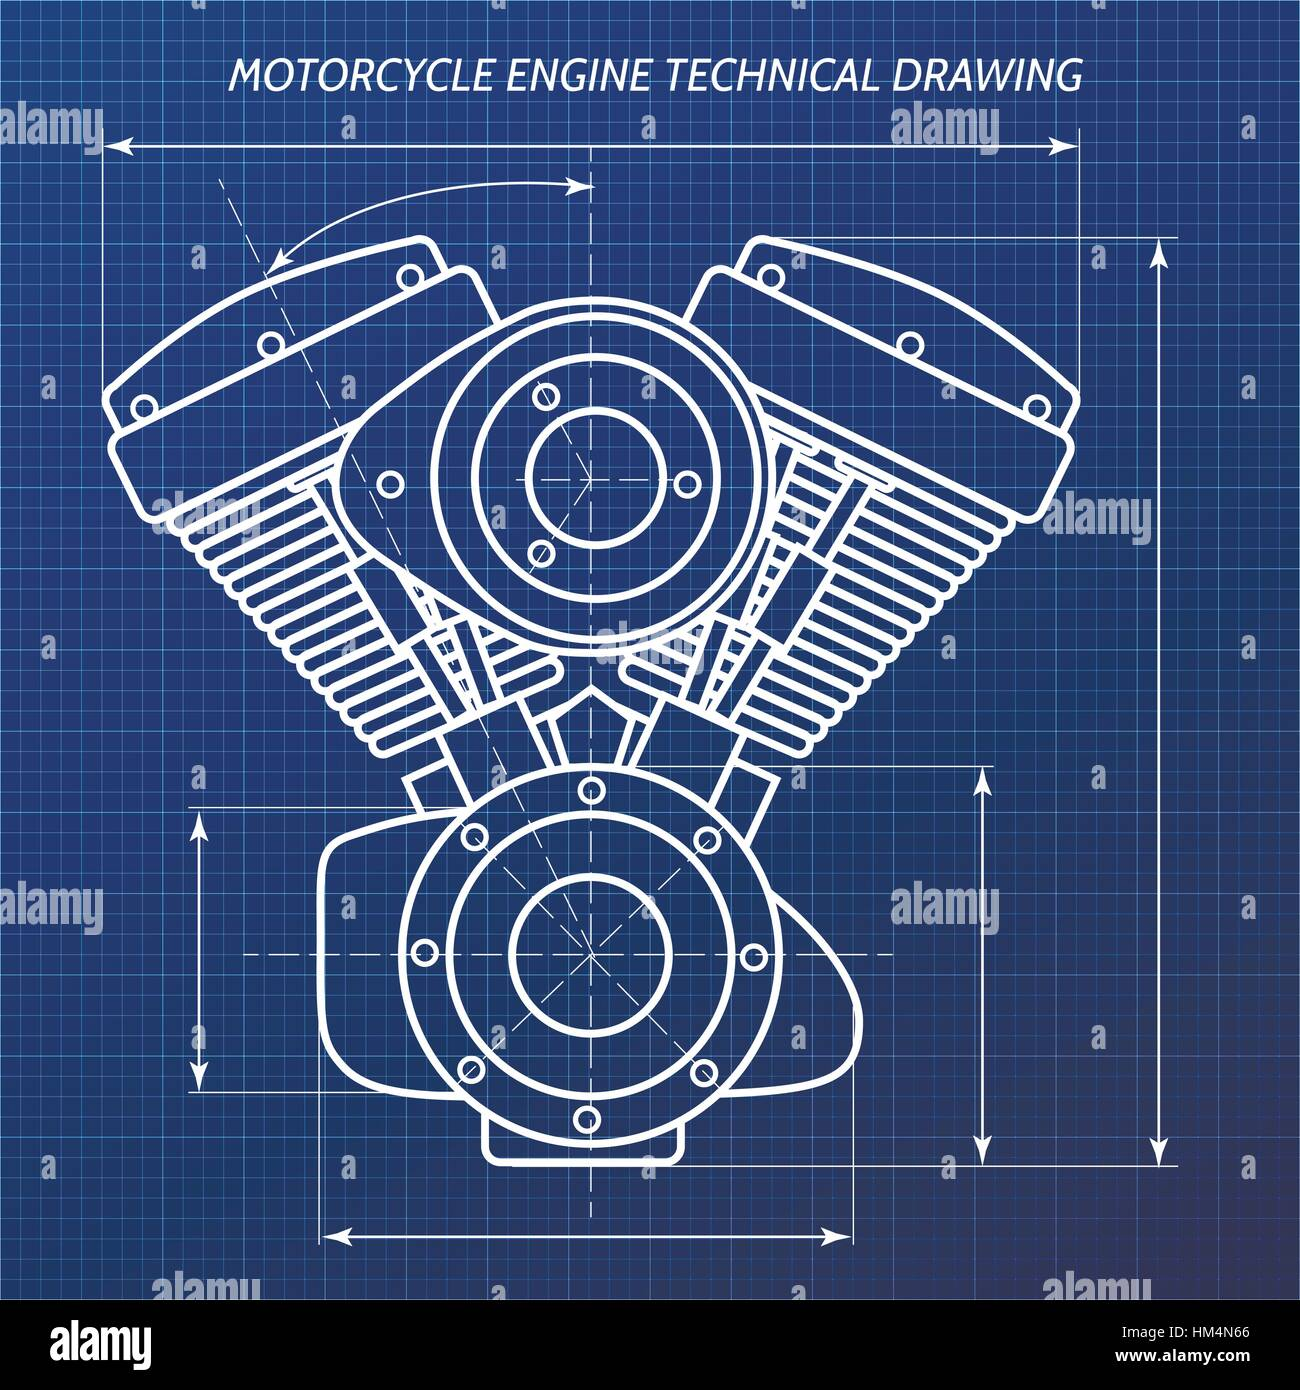 hight resolution of technical drawings of motorcycle engine motor engineering concept diagram motorcycle engine art